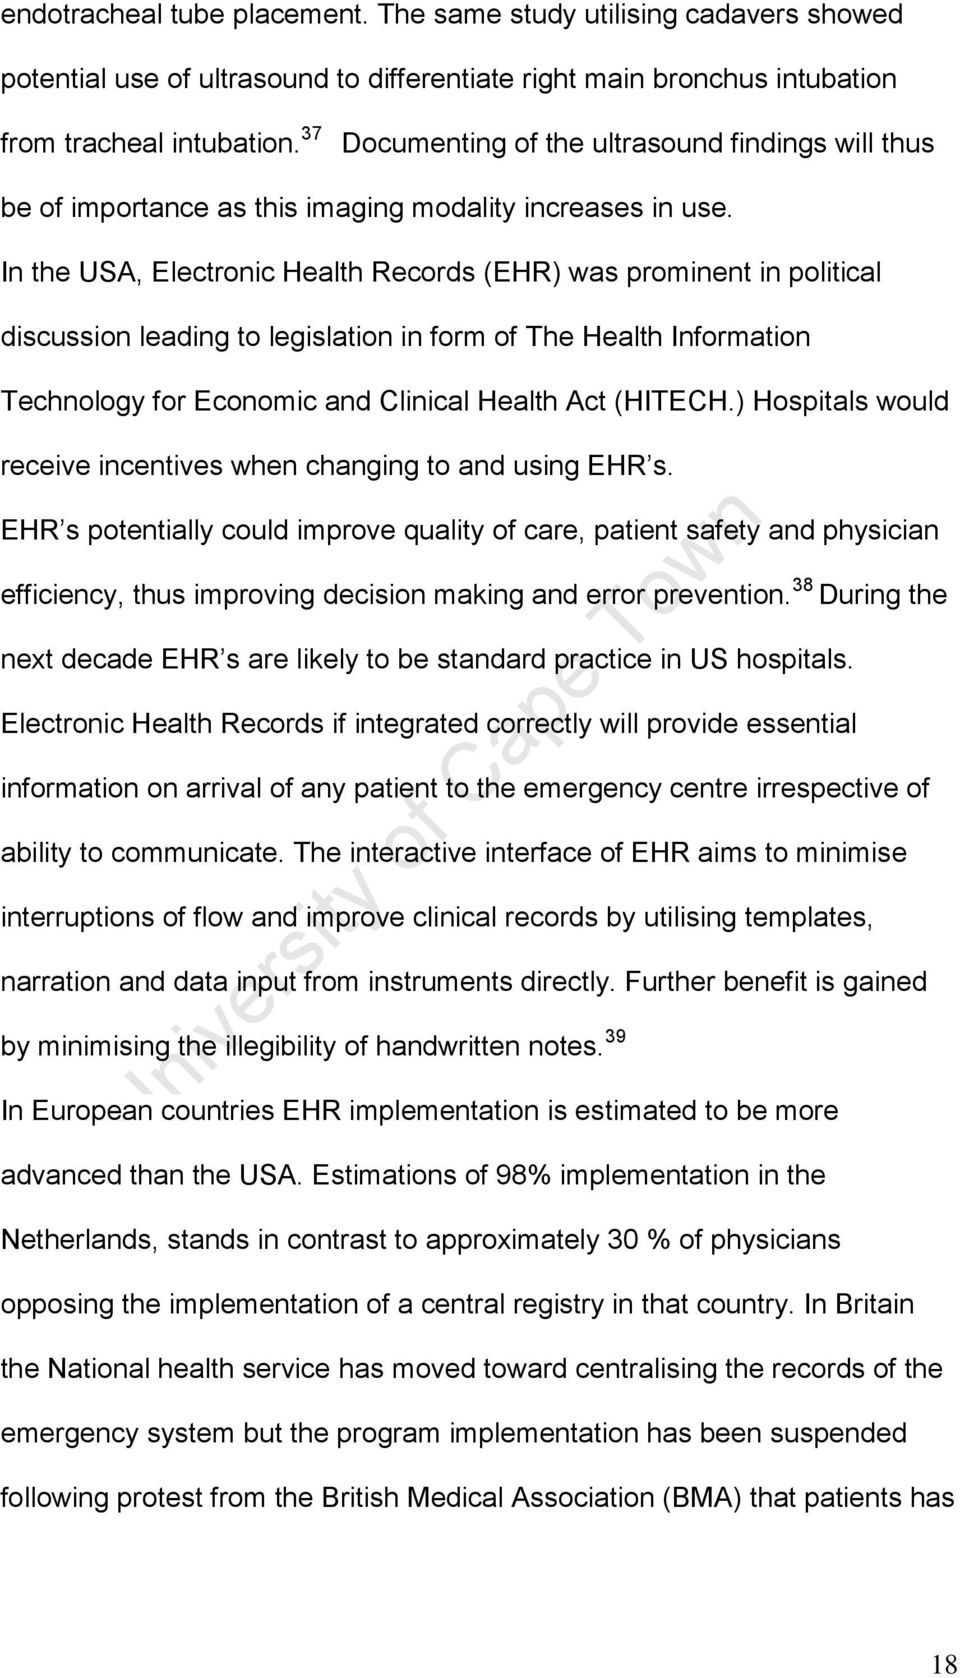 In the USA, Electronic Health Records (EHR) was prominent in political discussion leading to legislation in form of The Health Information Technology for Economic and Clinical Health Act (HITECH.